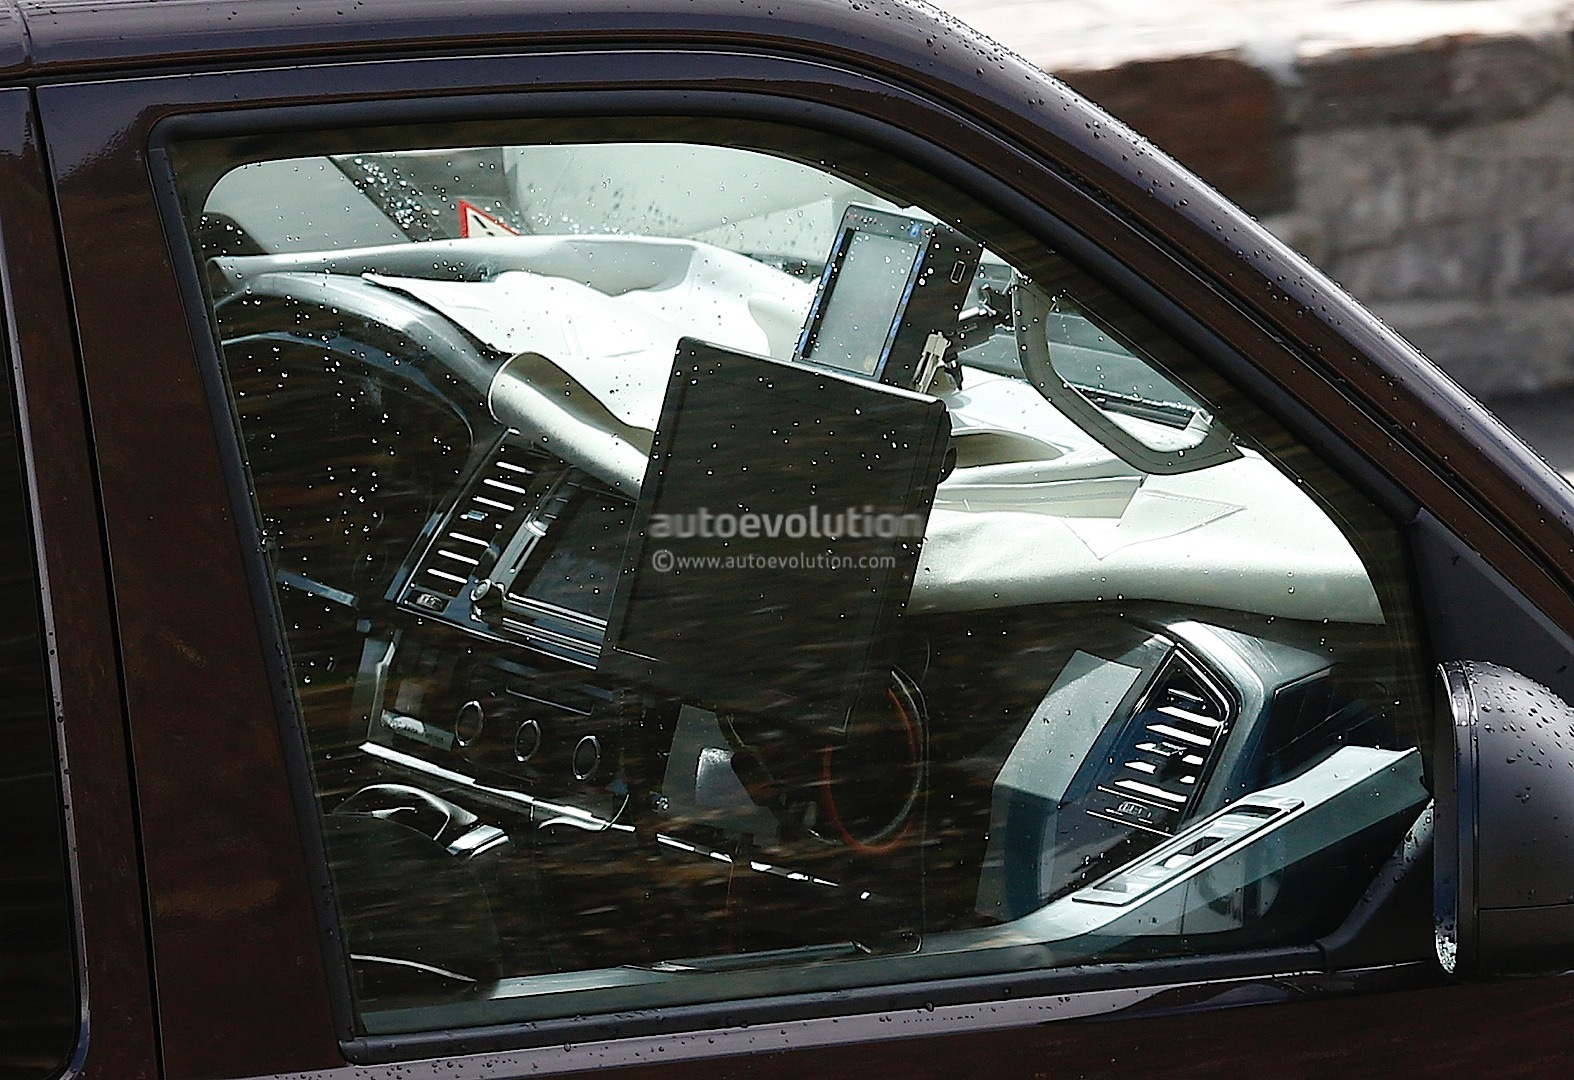 New T6 Volkswagen Transporter Reveals More Interior Details in Latest Spyshots - autoevolution